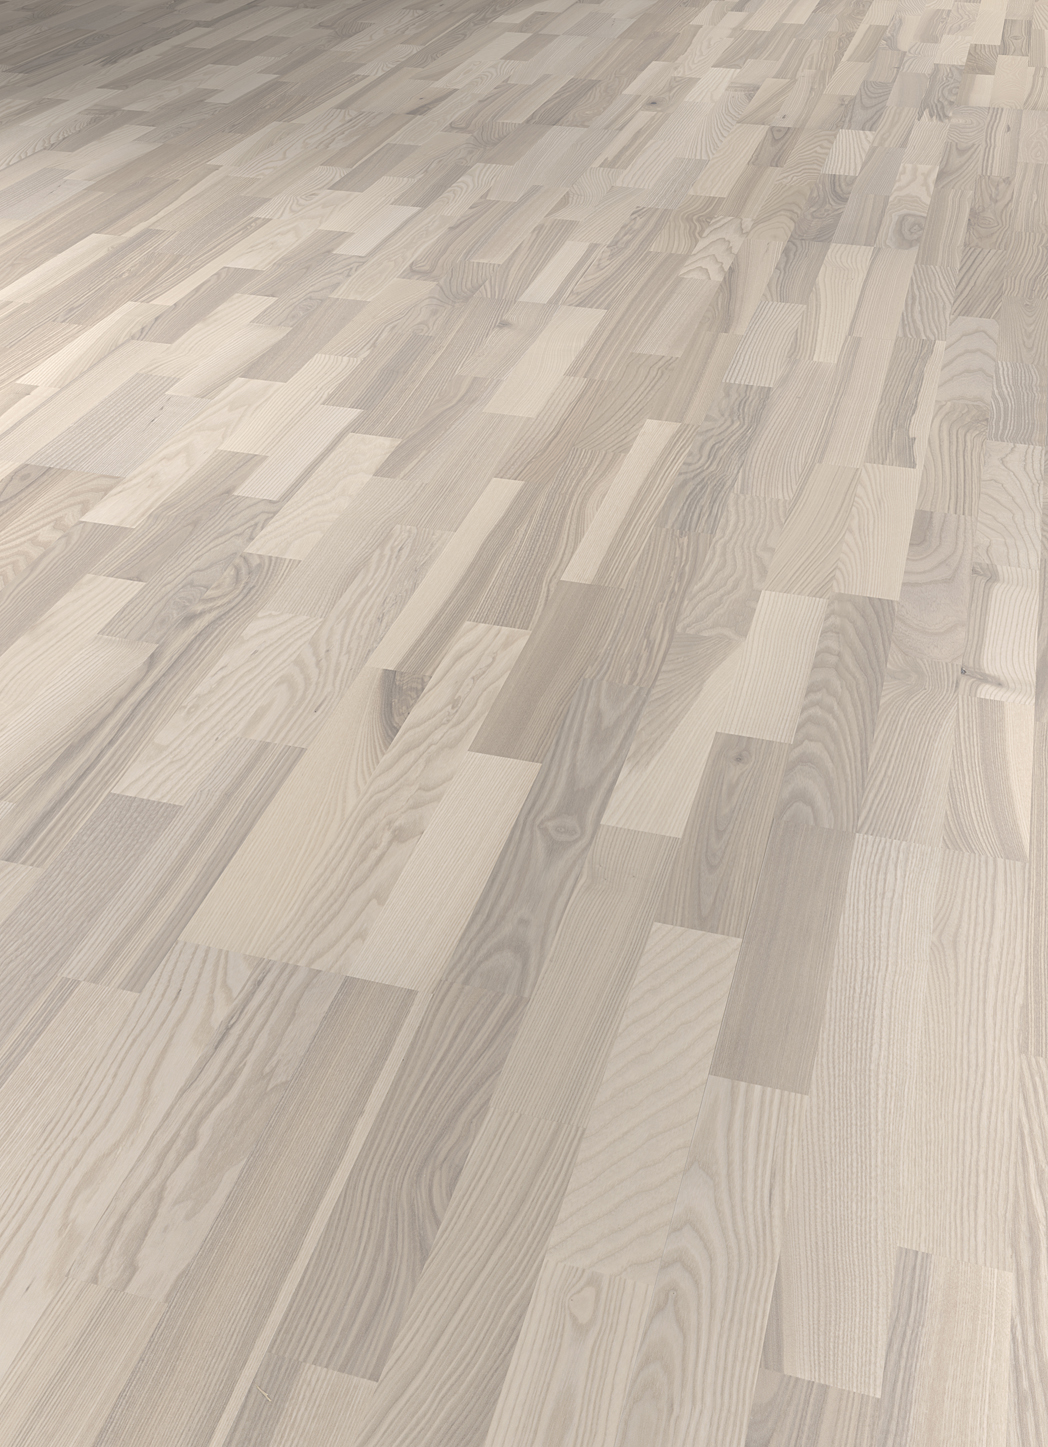 White Ash Wood Flooring ~ White ash wood flooring imgkid the image kid